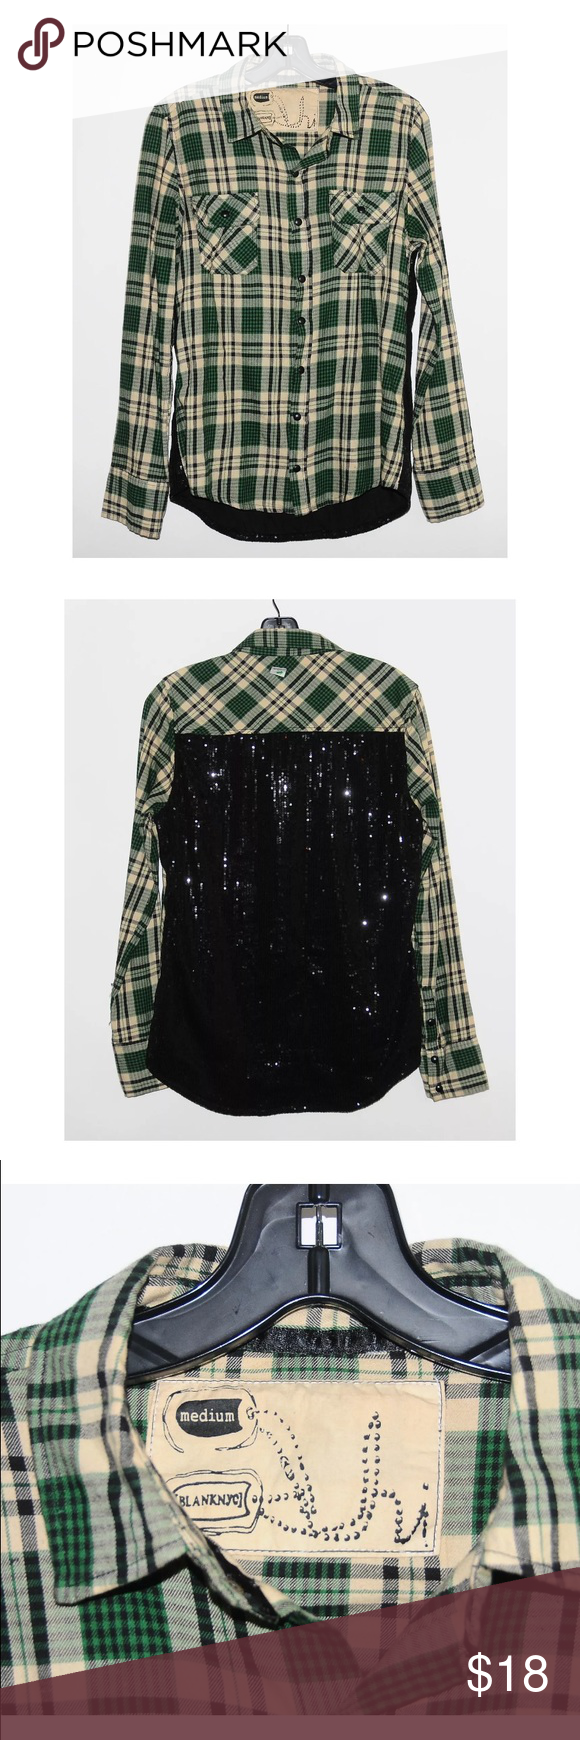 Blank NYC Green Plaid Black Sequin Blouse - Size M WHAT'S FOR SALE:Up for sale is a 100% authentic Blank NYC Blouse  SIZE:US Women's Size M Length - 28 inches Shoulder to Shoulder - 15.5 inches Armpit to Armpit - 19 inches  COLOR: Multi Green/Black  CONDITION:Pre-owned and in good condition - no major flaws!  MATERIALS: 75% Cotton, 25% Polyester (DC box 1) Blank Denim Tops Button Down Shirts